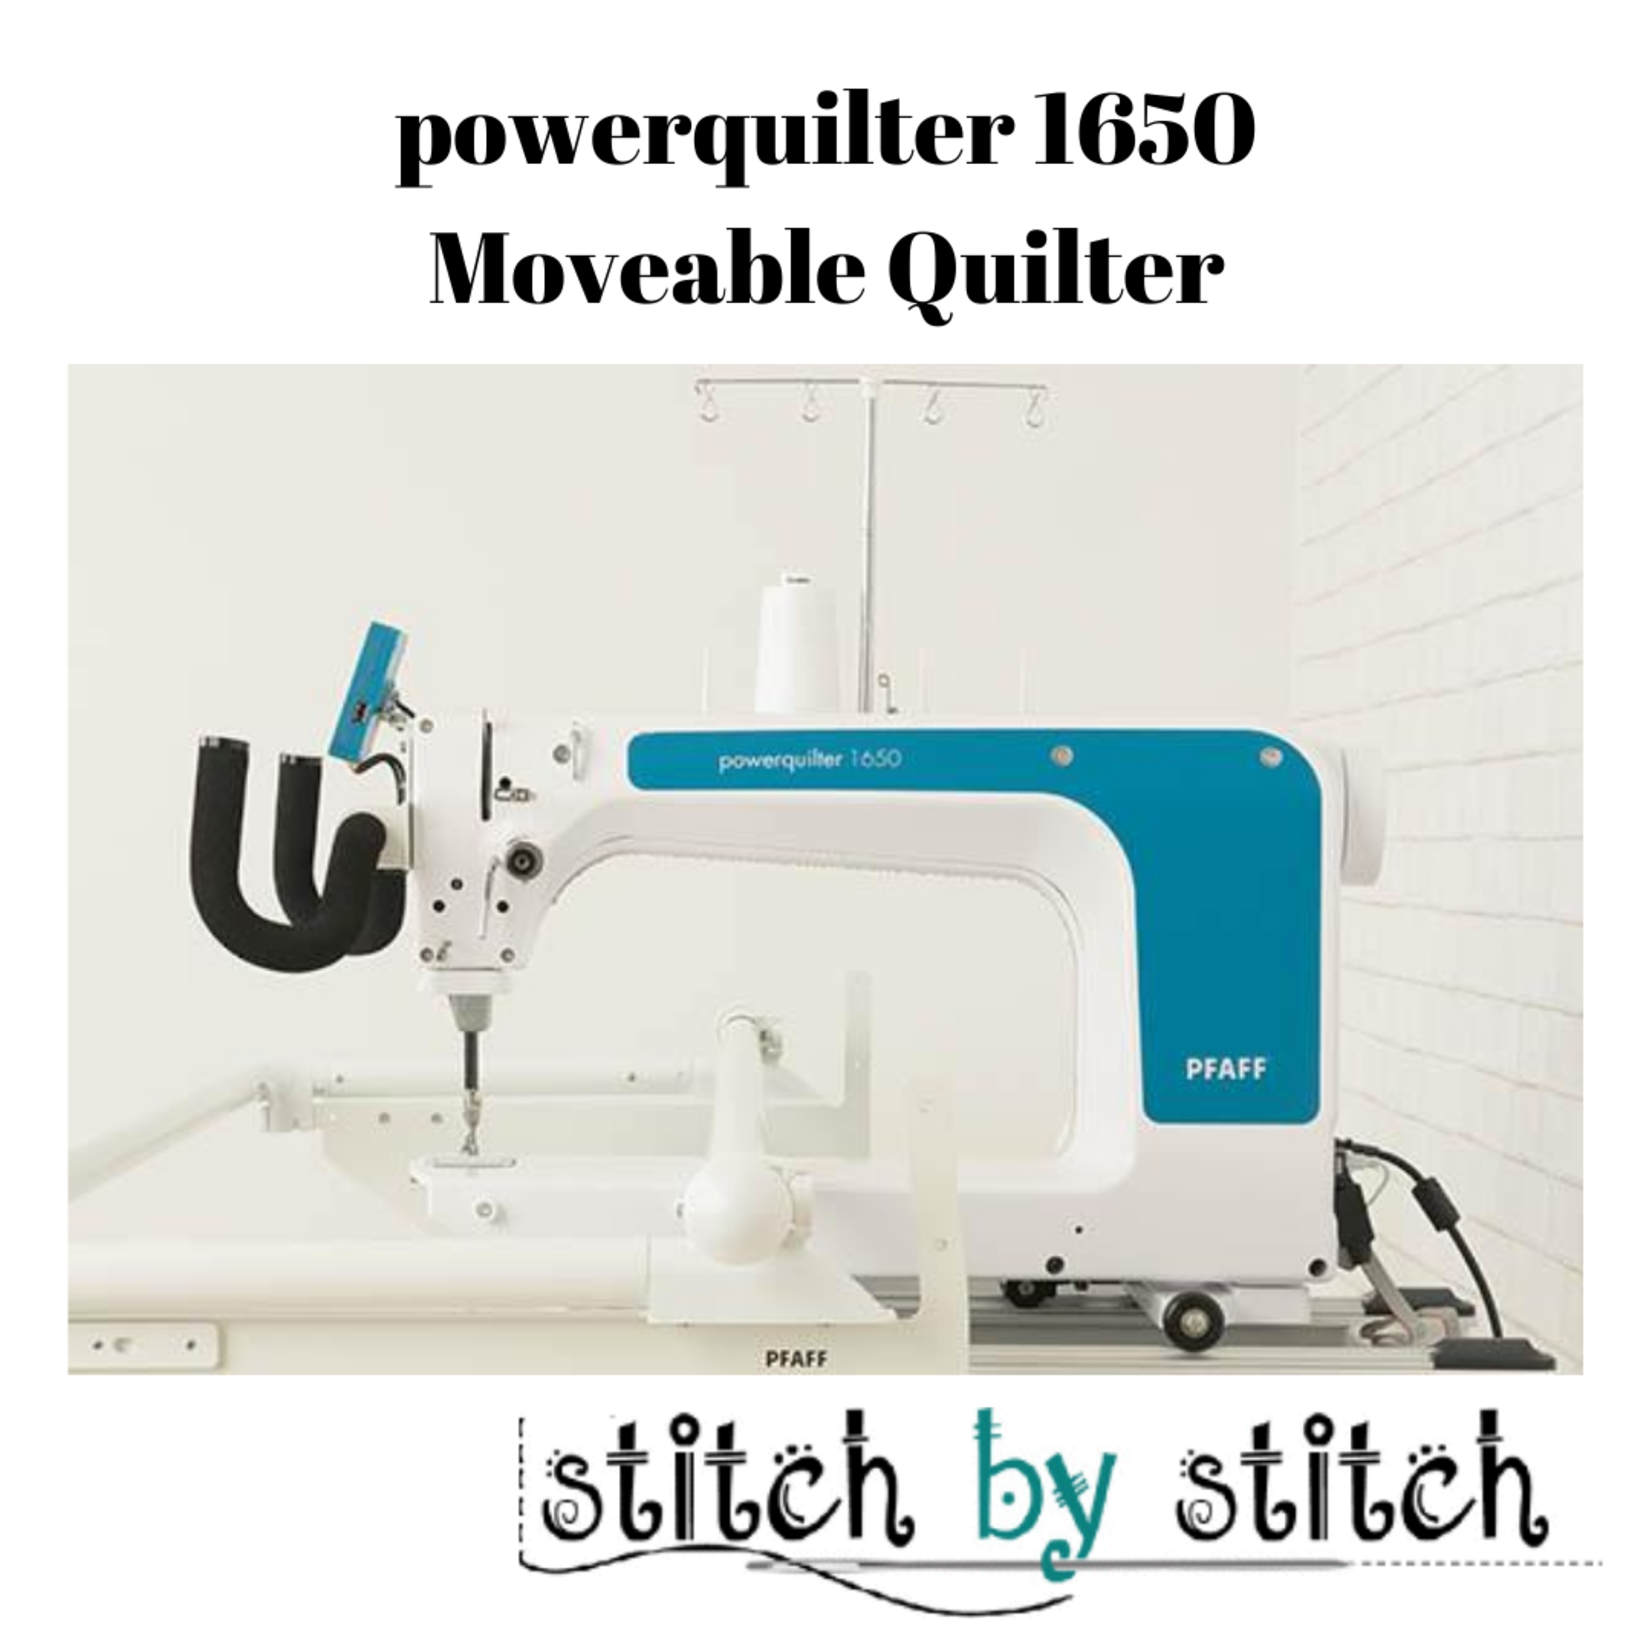 Pfaff powerquilter™ 1650 Long-Arm Quilter